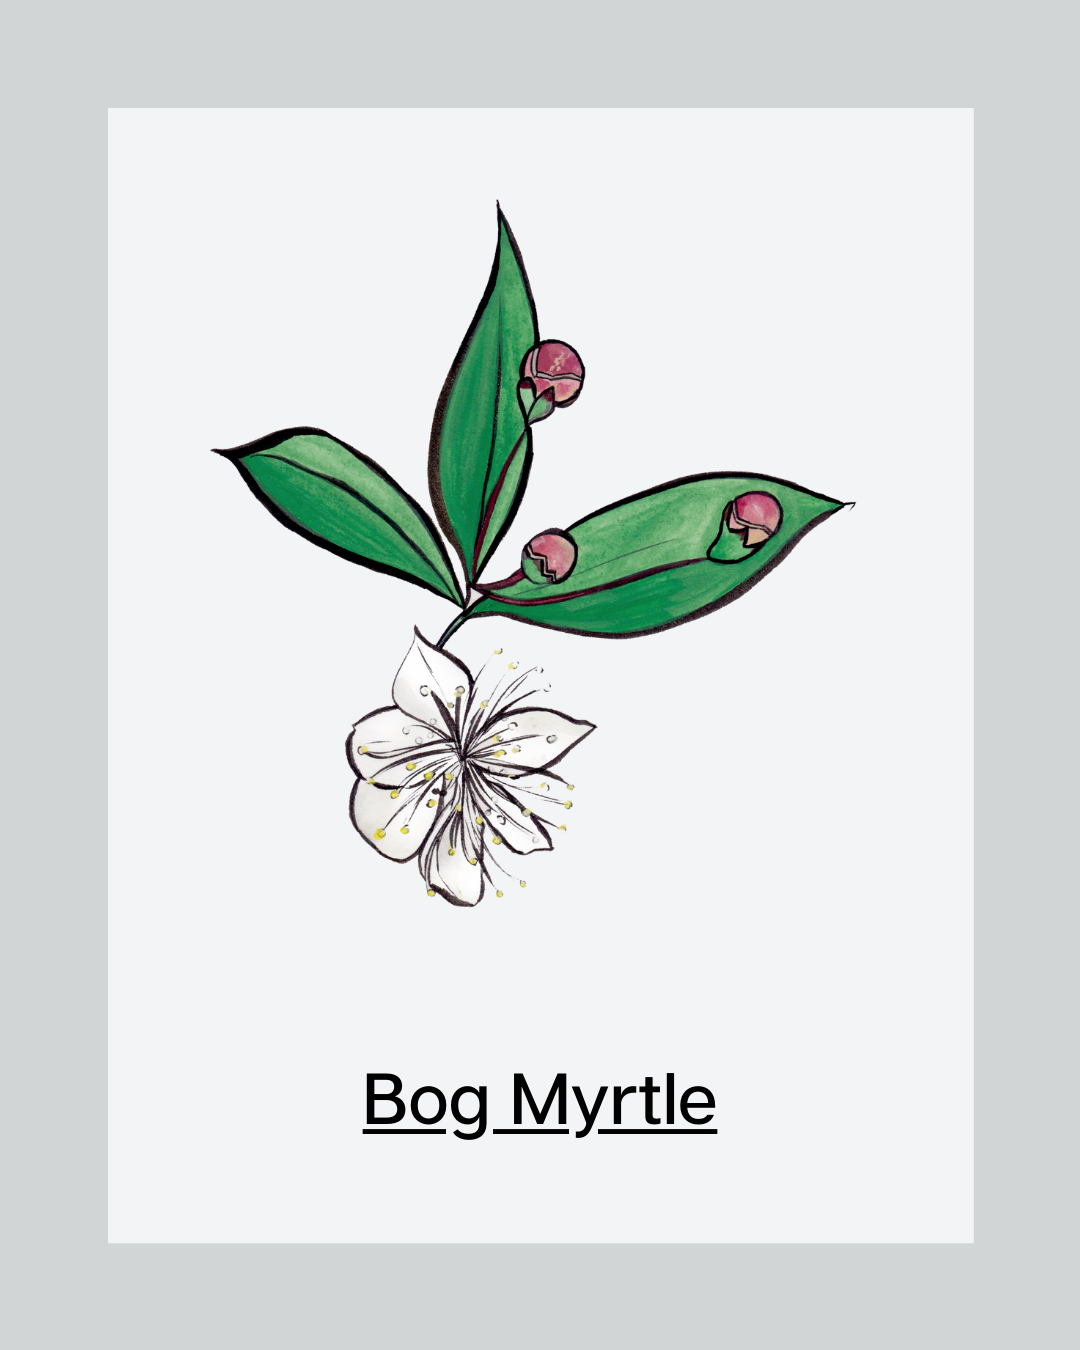 Ingredient of the Month: Bog Myrtle